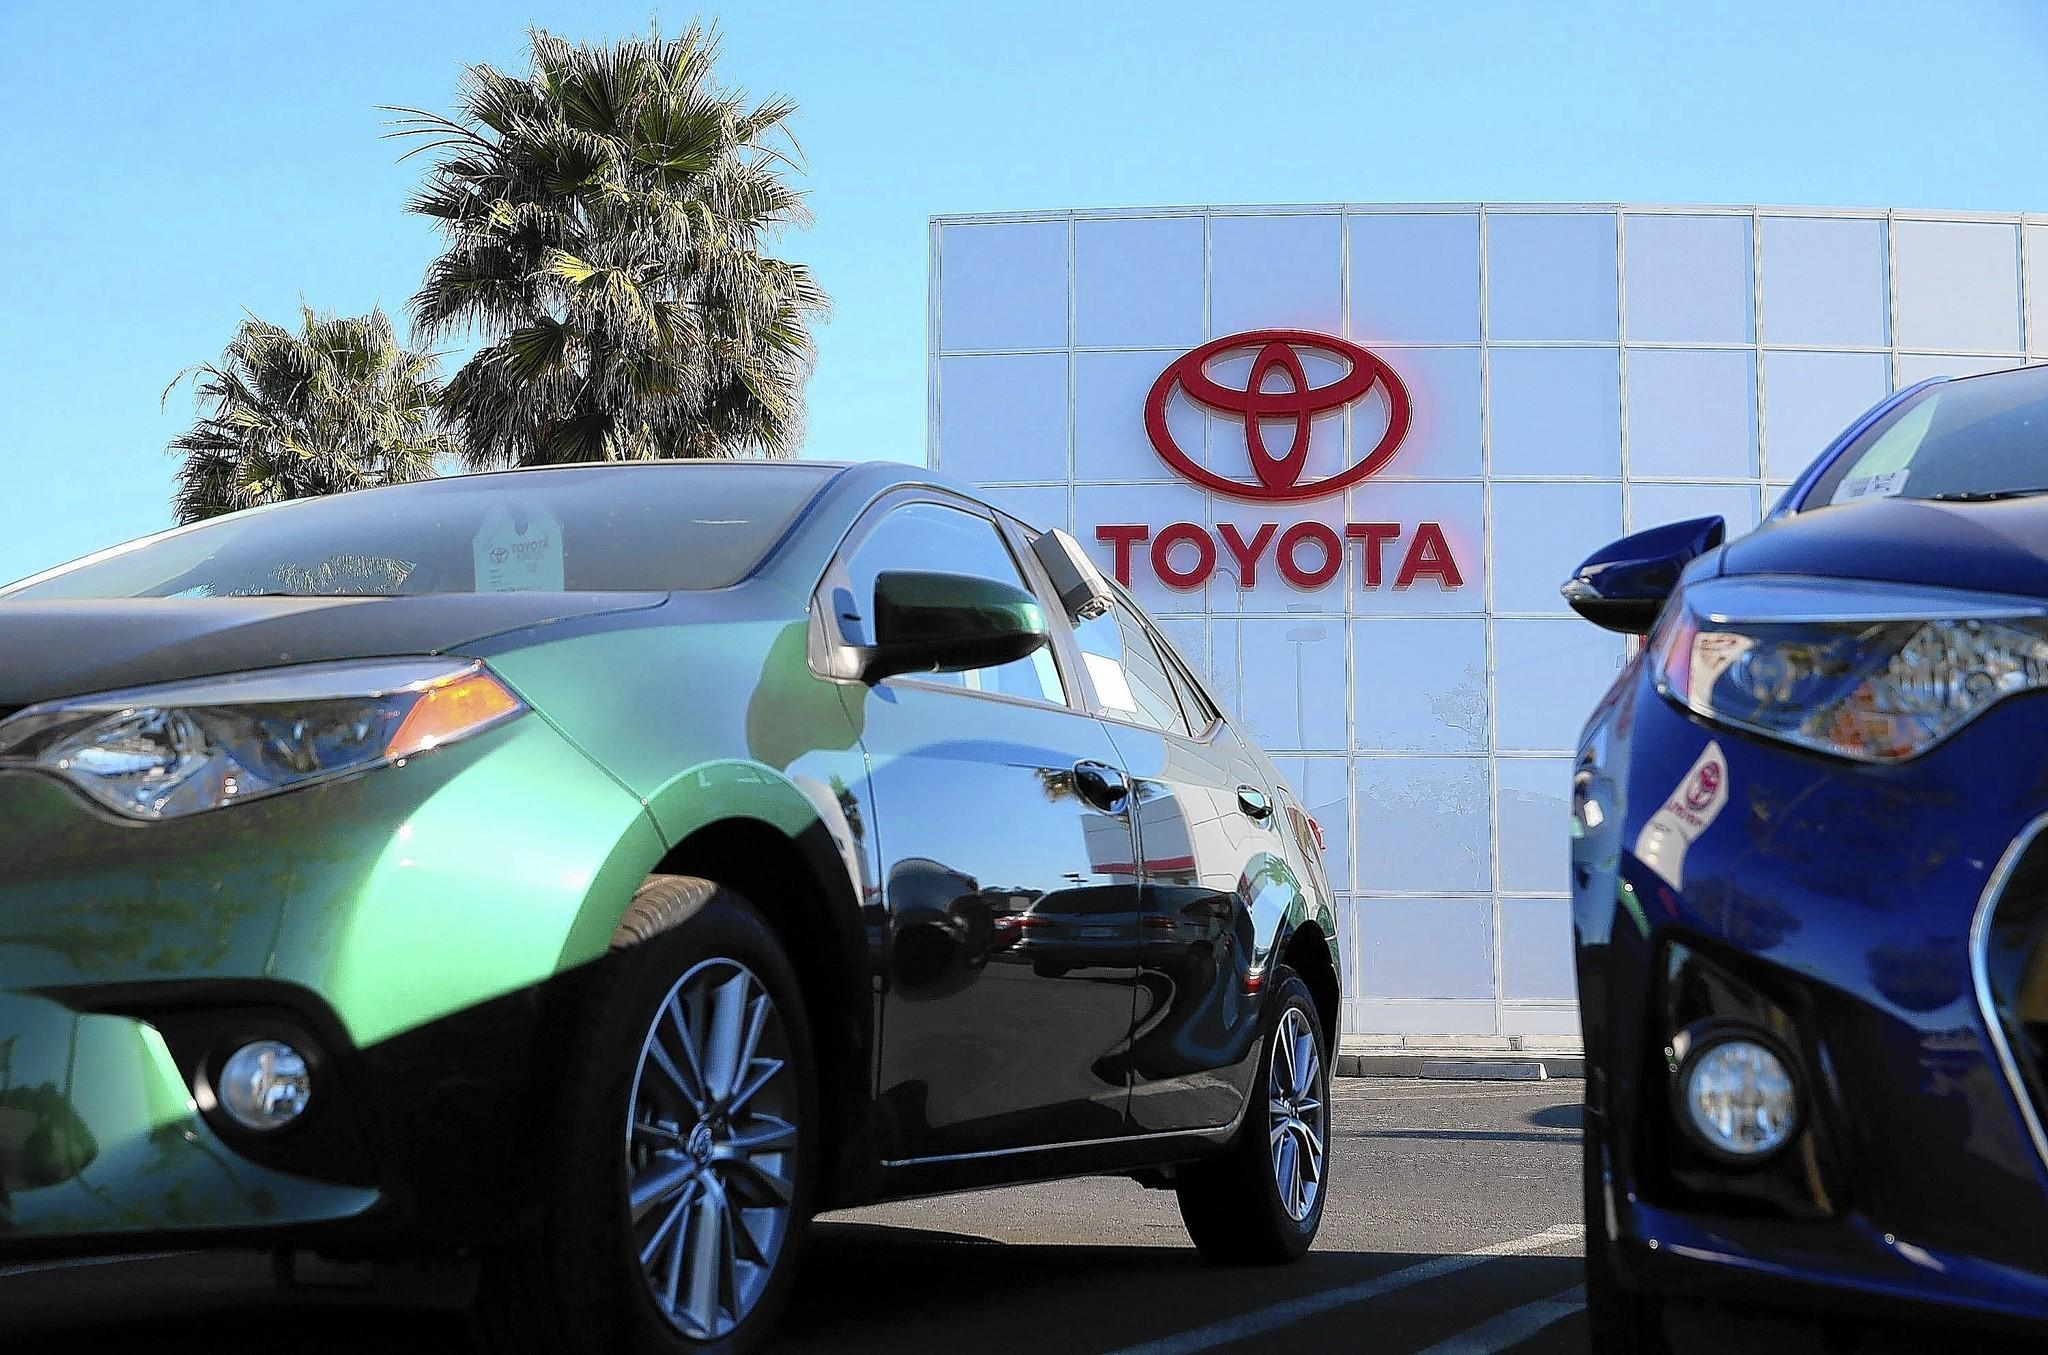 The settlement brings Toyota's tab for the sudden-acceleration ordeal to about $5 billion in fines, settlements, repair costs and lost sales.